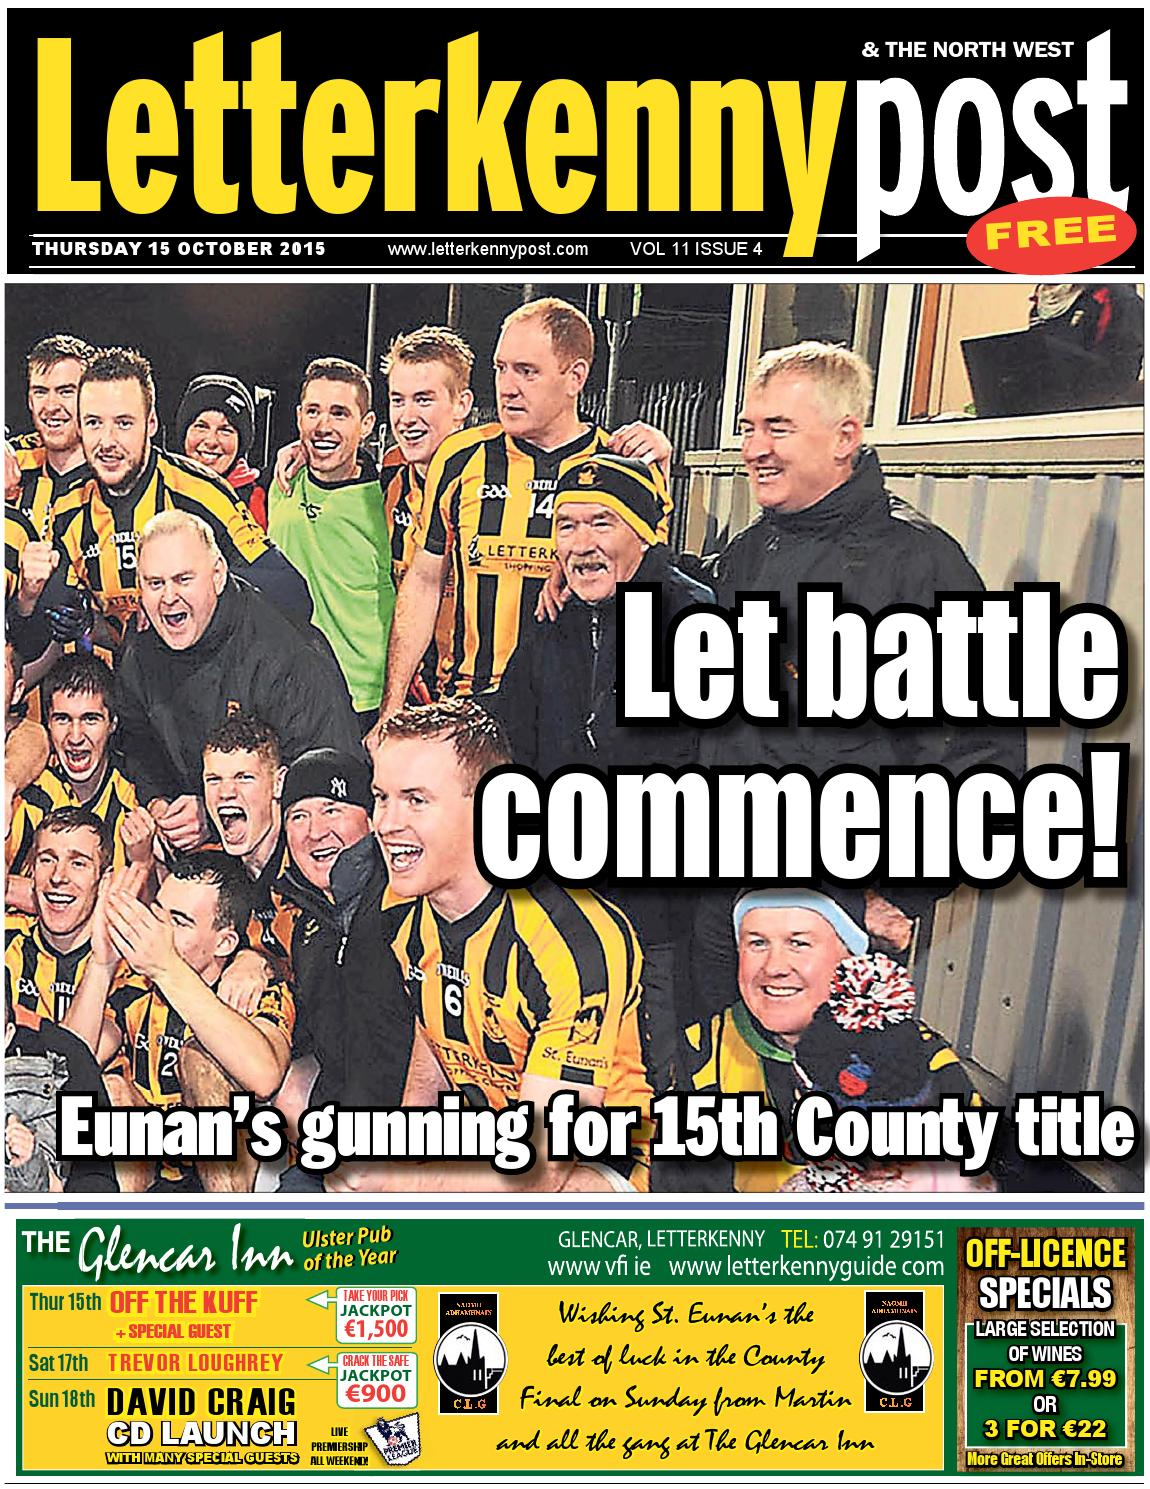 Letterkenny post 15 10 15 by River Media Newspapers - issuu